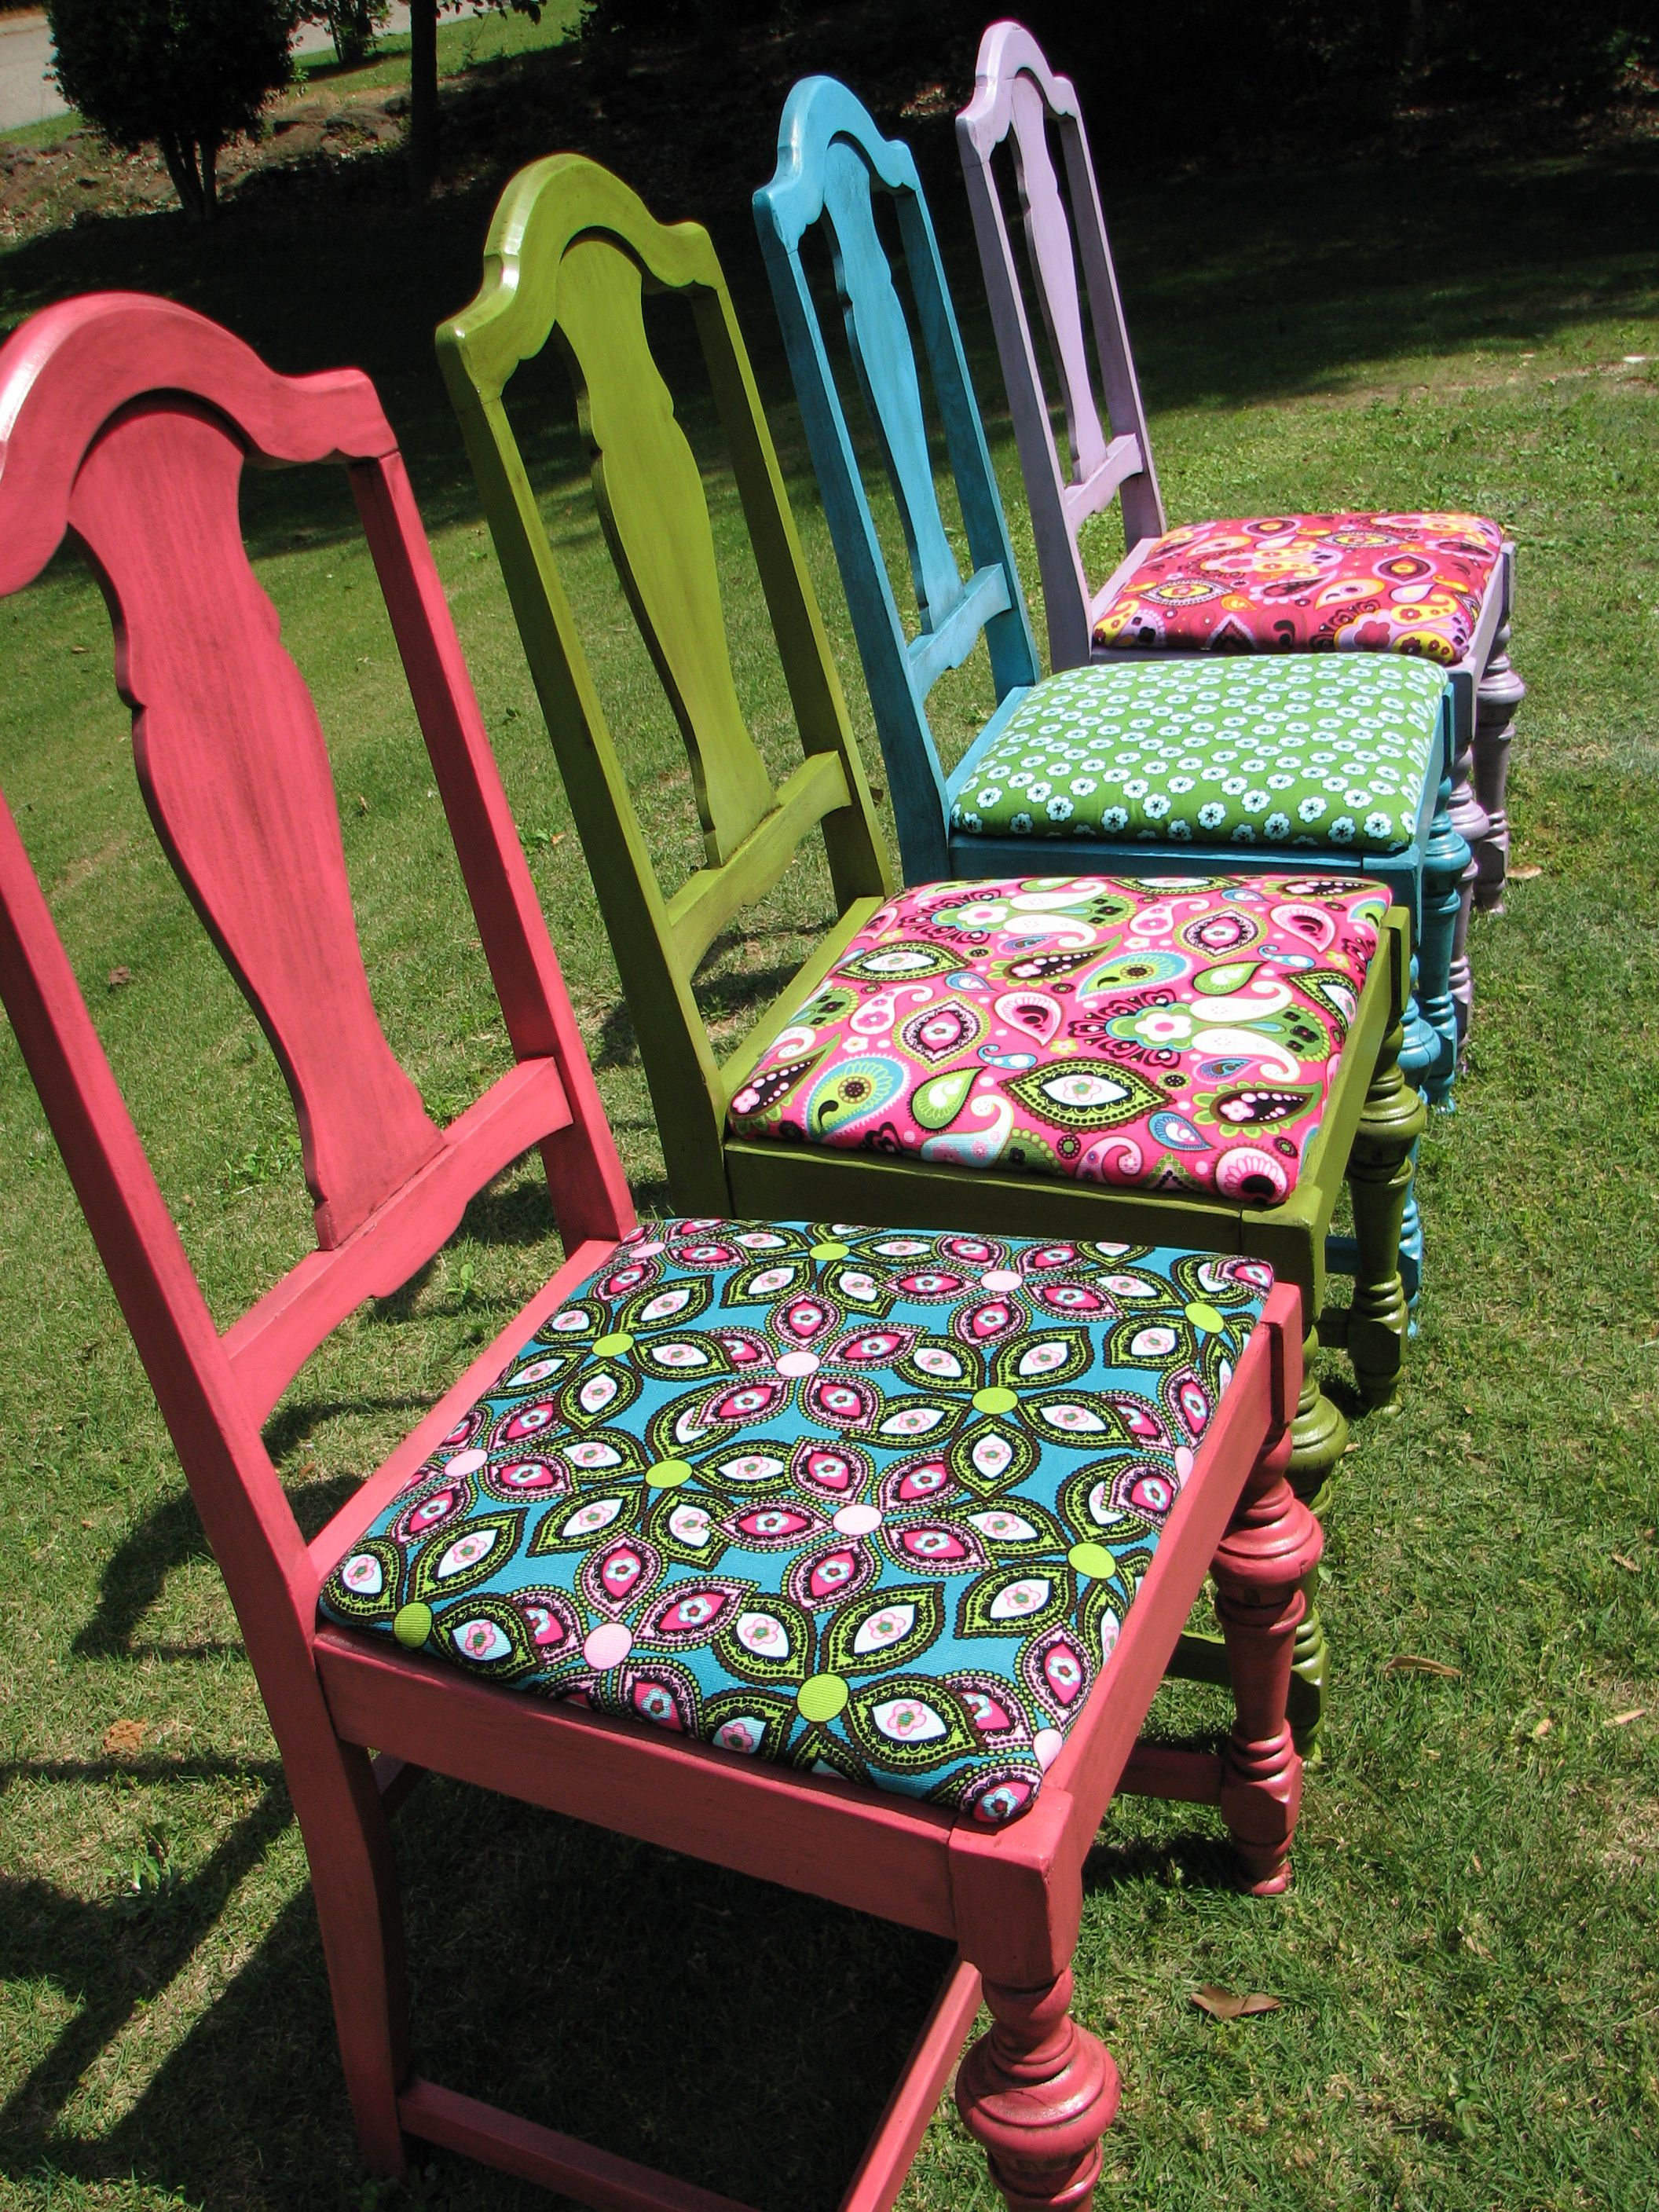 Refinished Antique Chairs I Love Making Old Things New